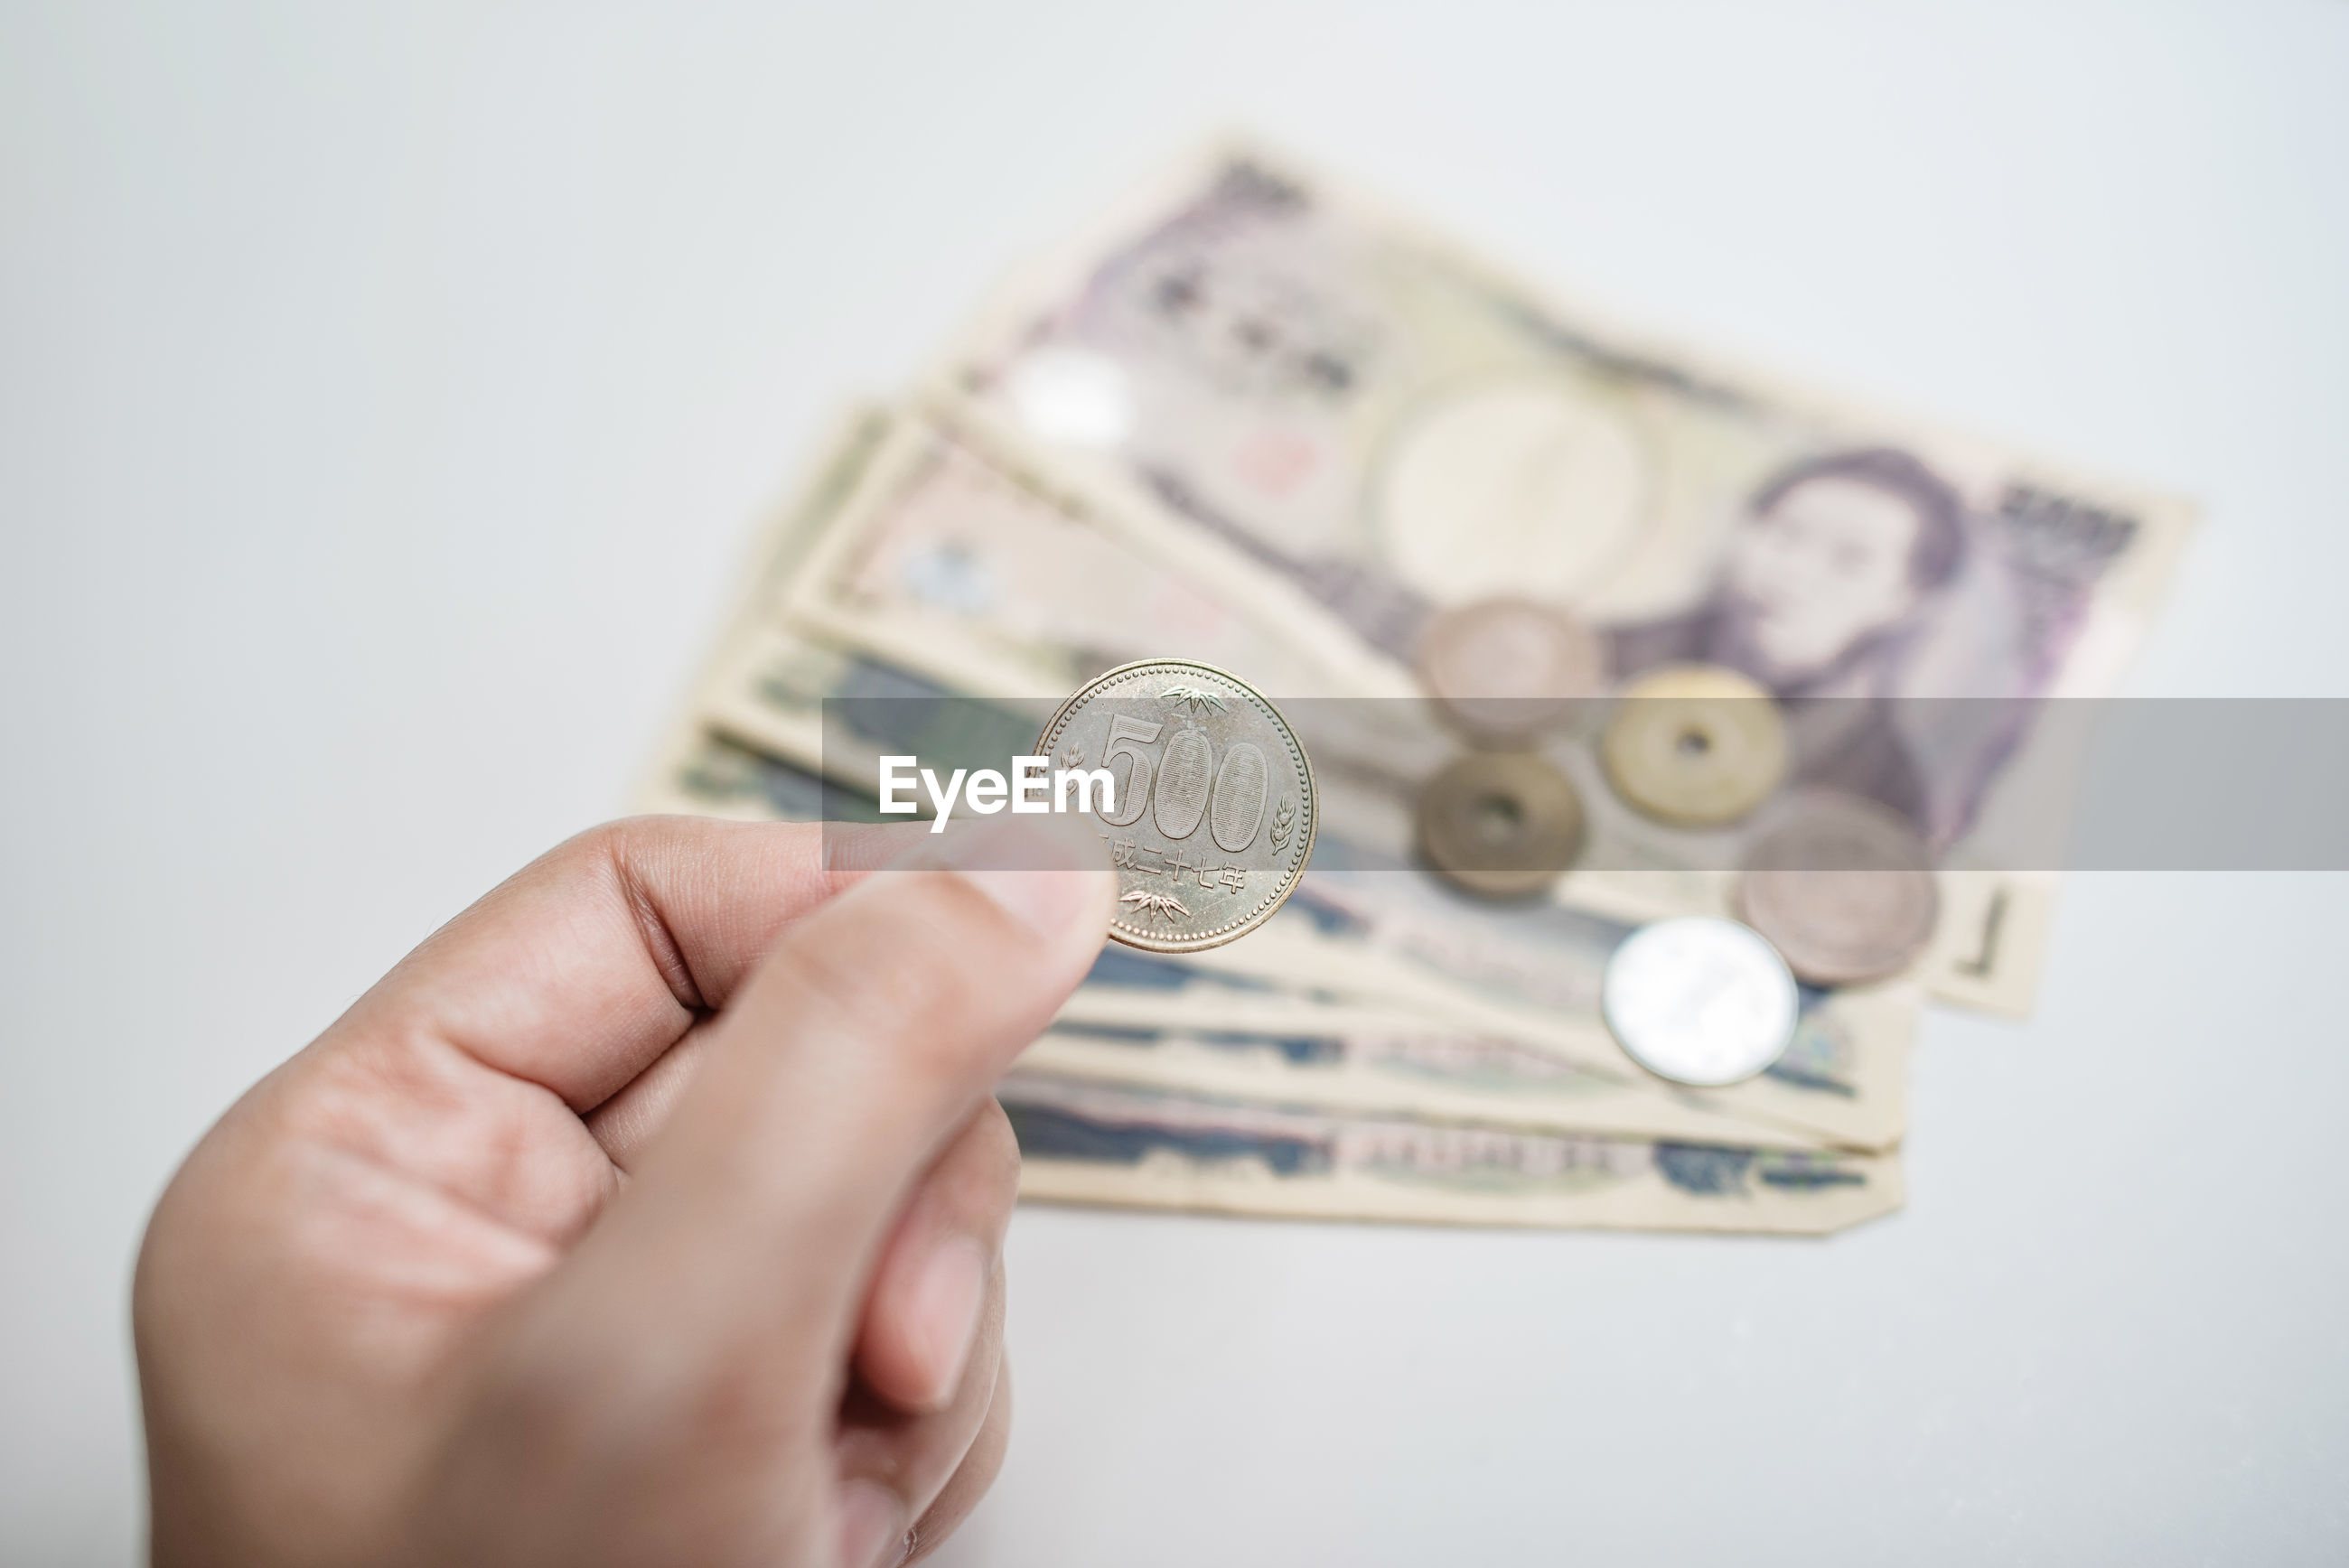 Cropped hand of person holding currency against white background